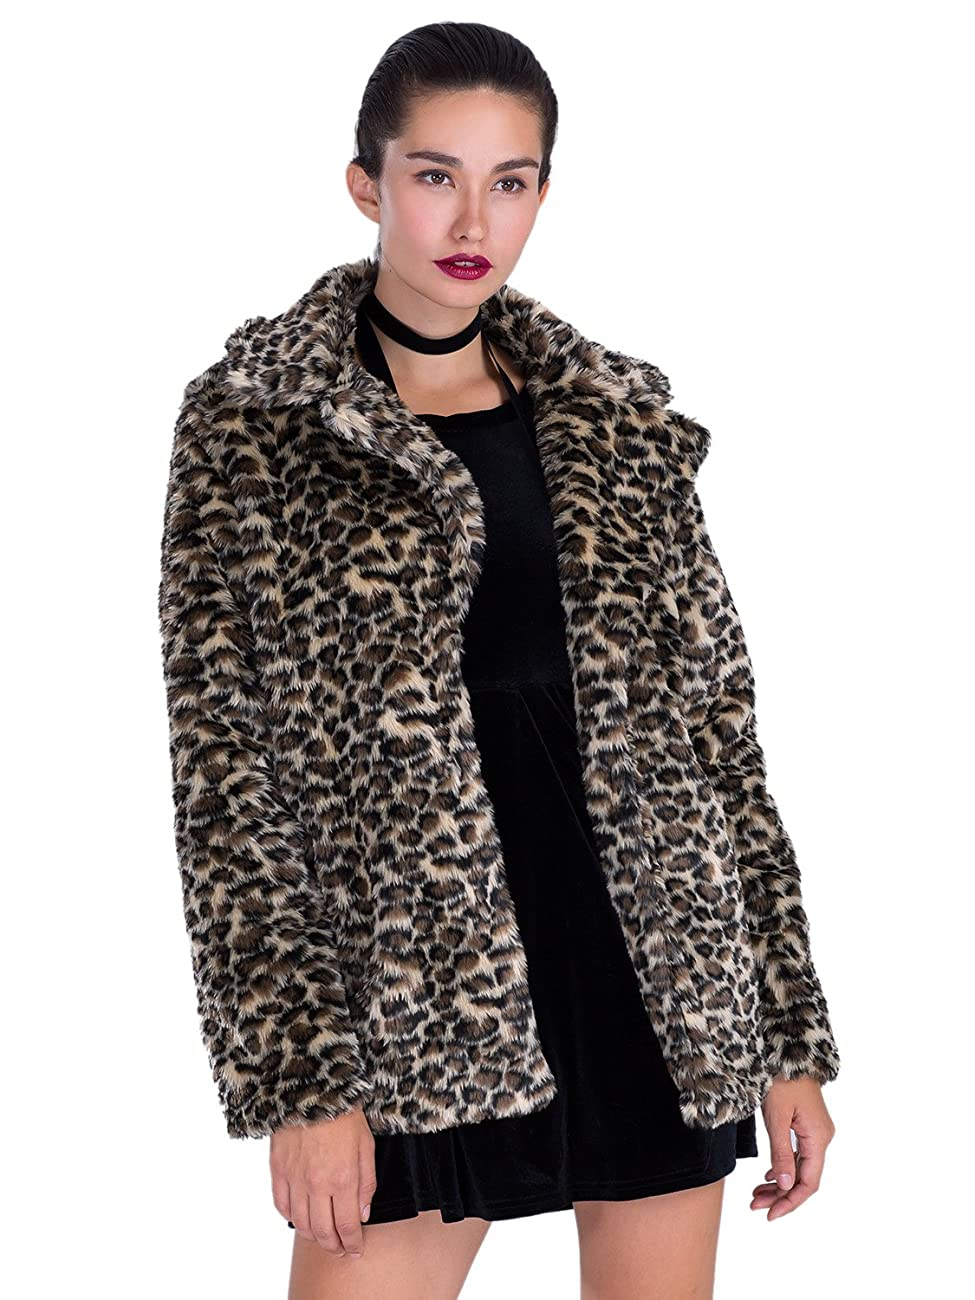 Choies Women Elegant Vintage Leopard Print Lapel Faux Fur Coat Fall Winter Outwear 0